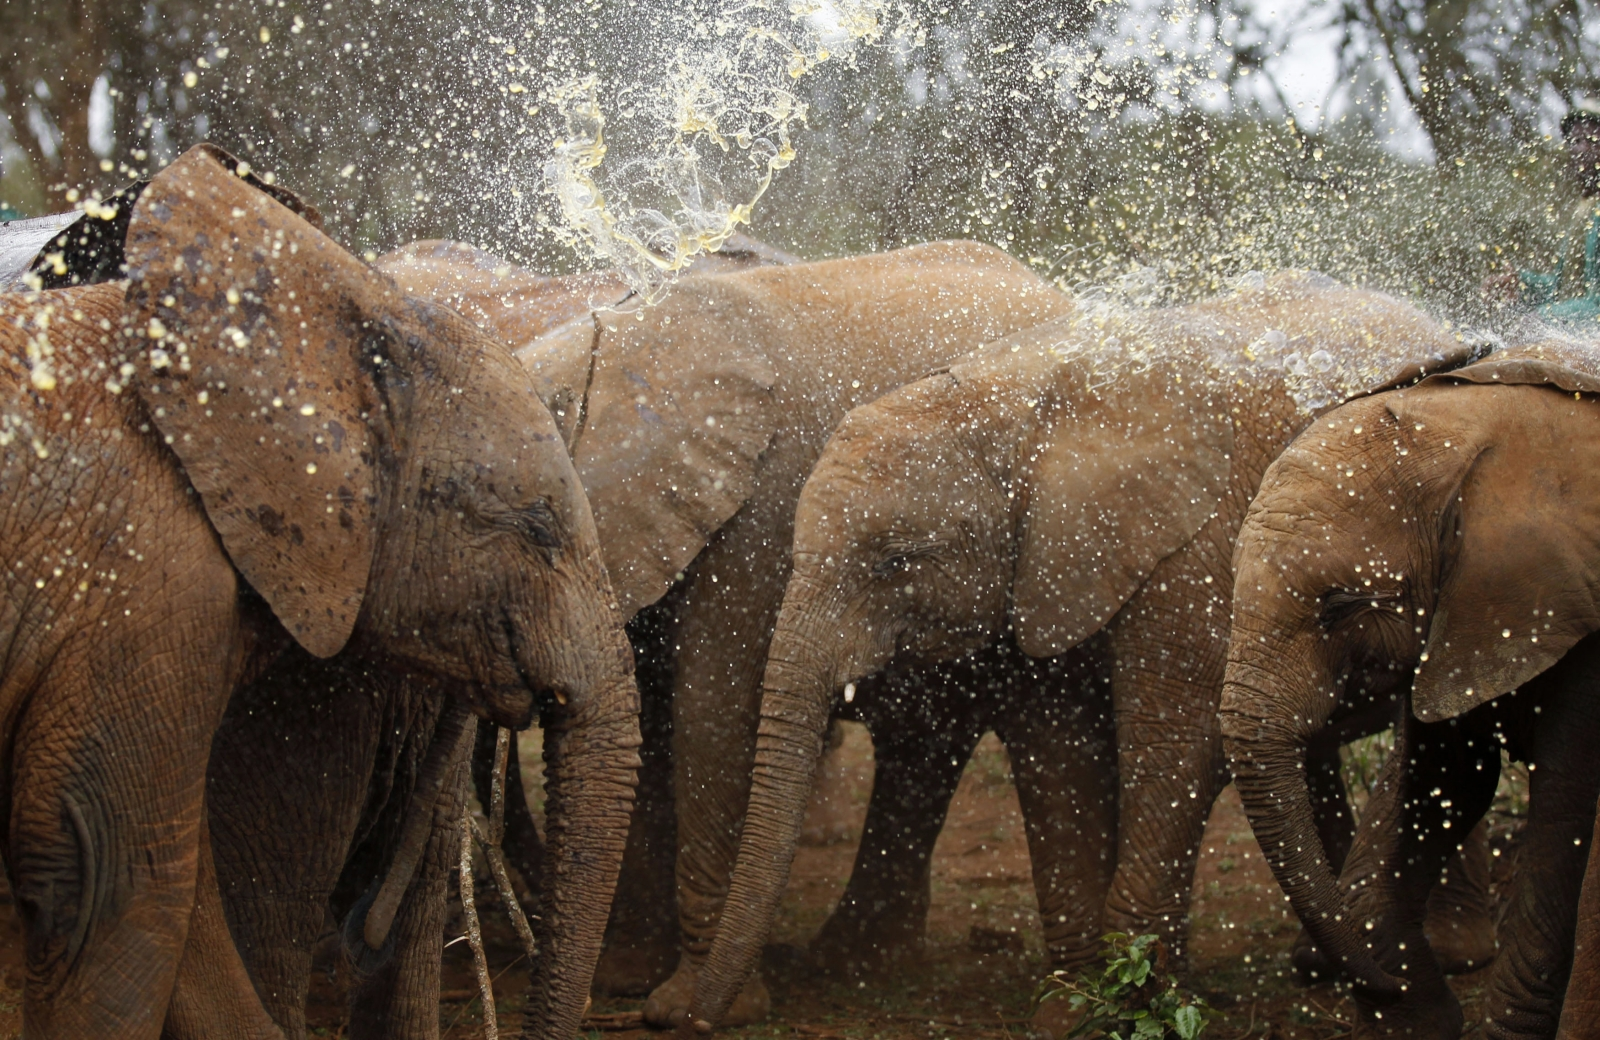 aeb43c958 China  Falling ivory price signals hope for end to elephant poaching ...